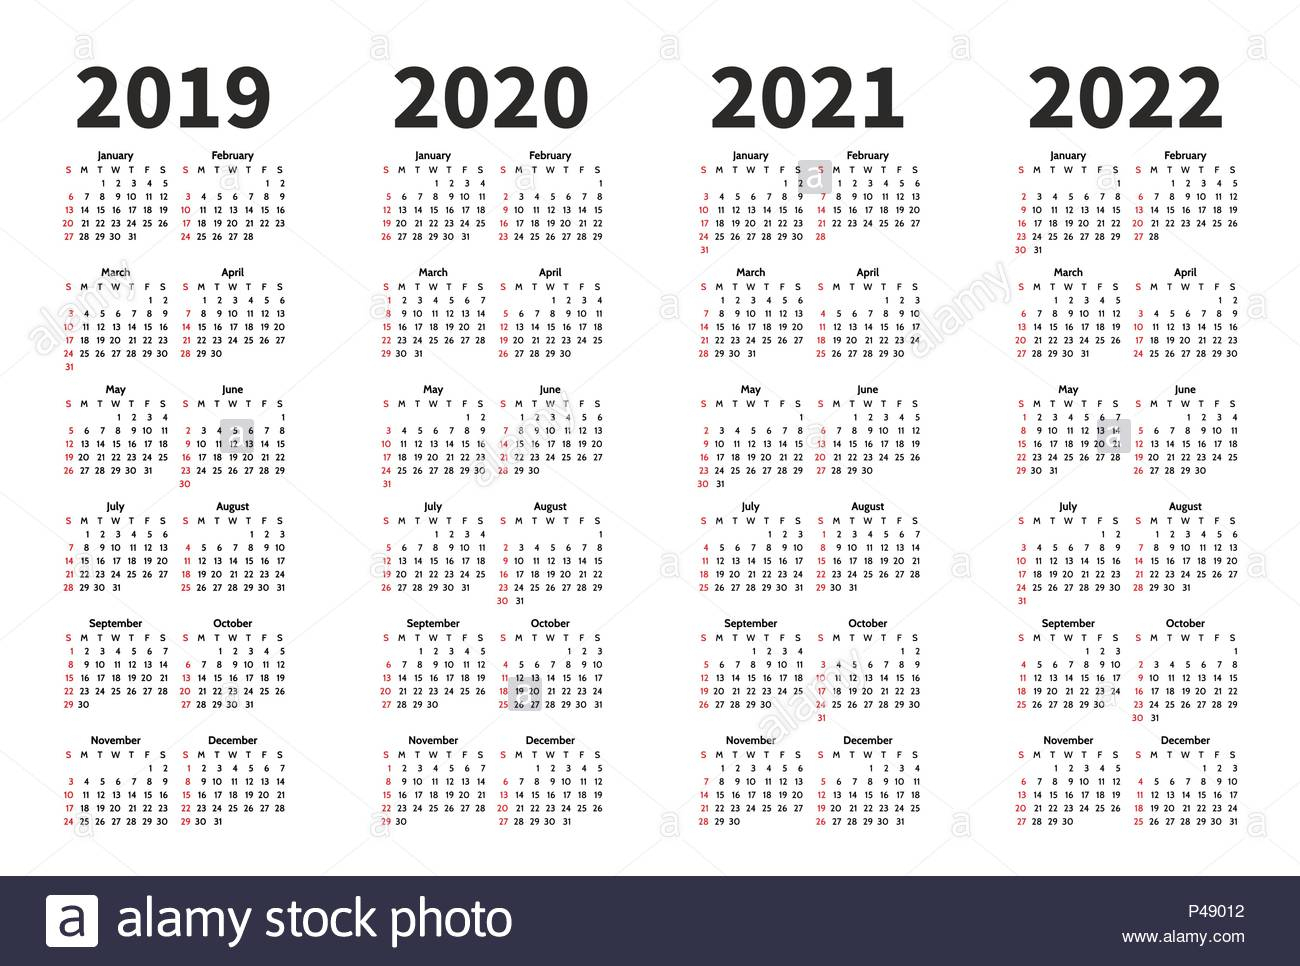 Calendar 2019, 2020, 2021 And 2022 Year Vector Design regarding Three Year Calendar 2020 2021 2022